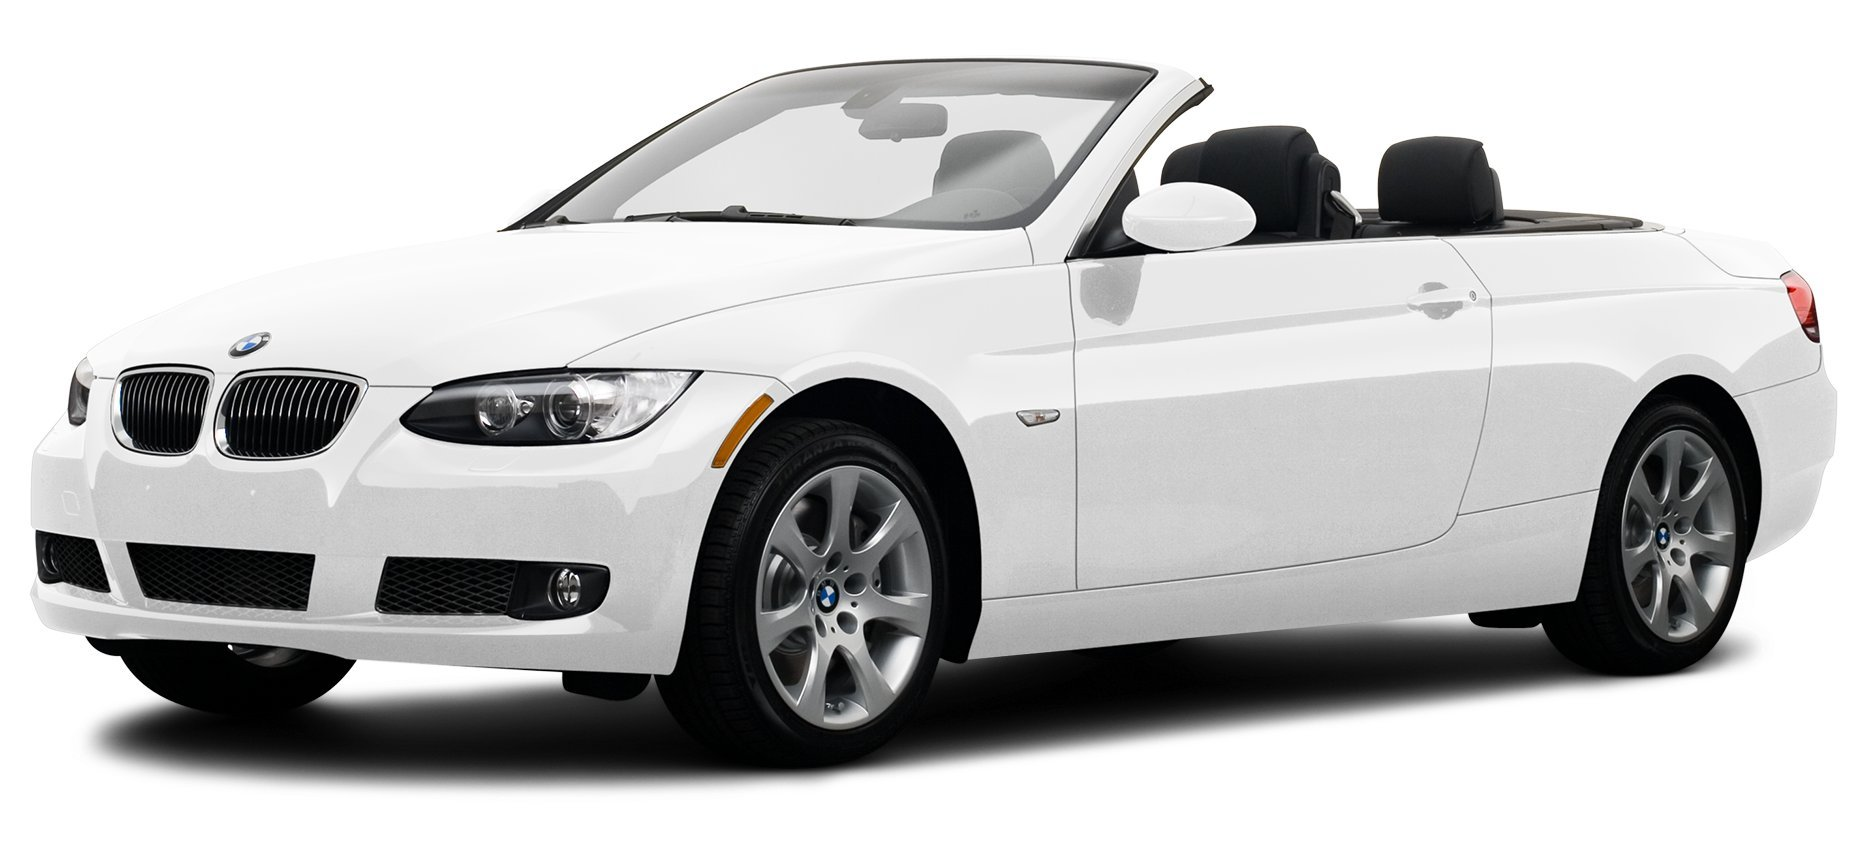 2008 bmw 335i reviews images and specs vehicles. Black Bedroom Furniture Sets. Home Design Ideas